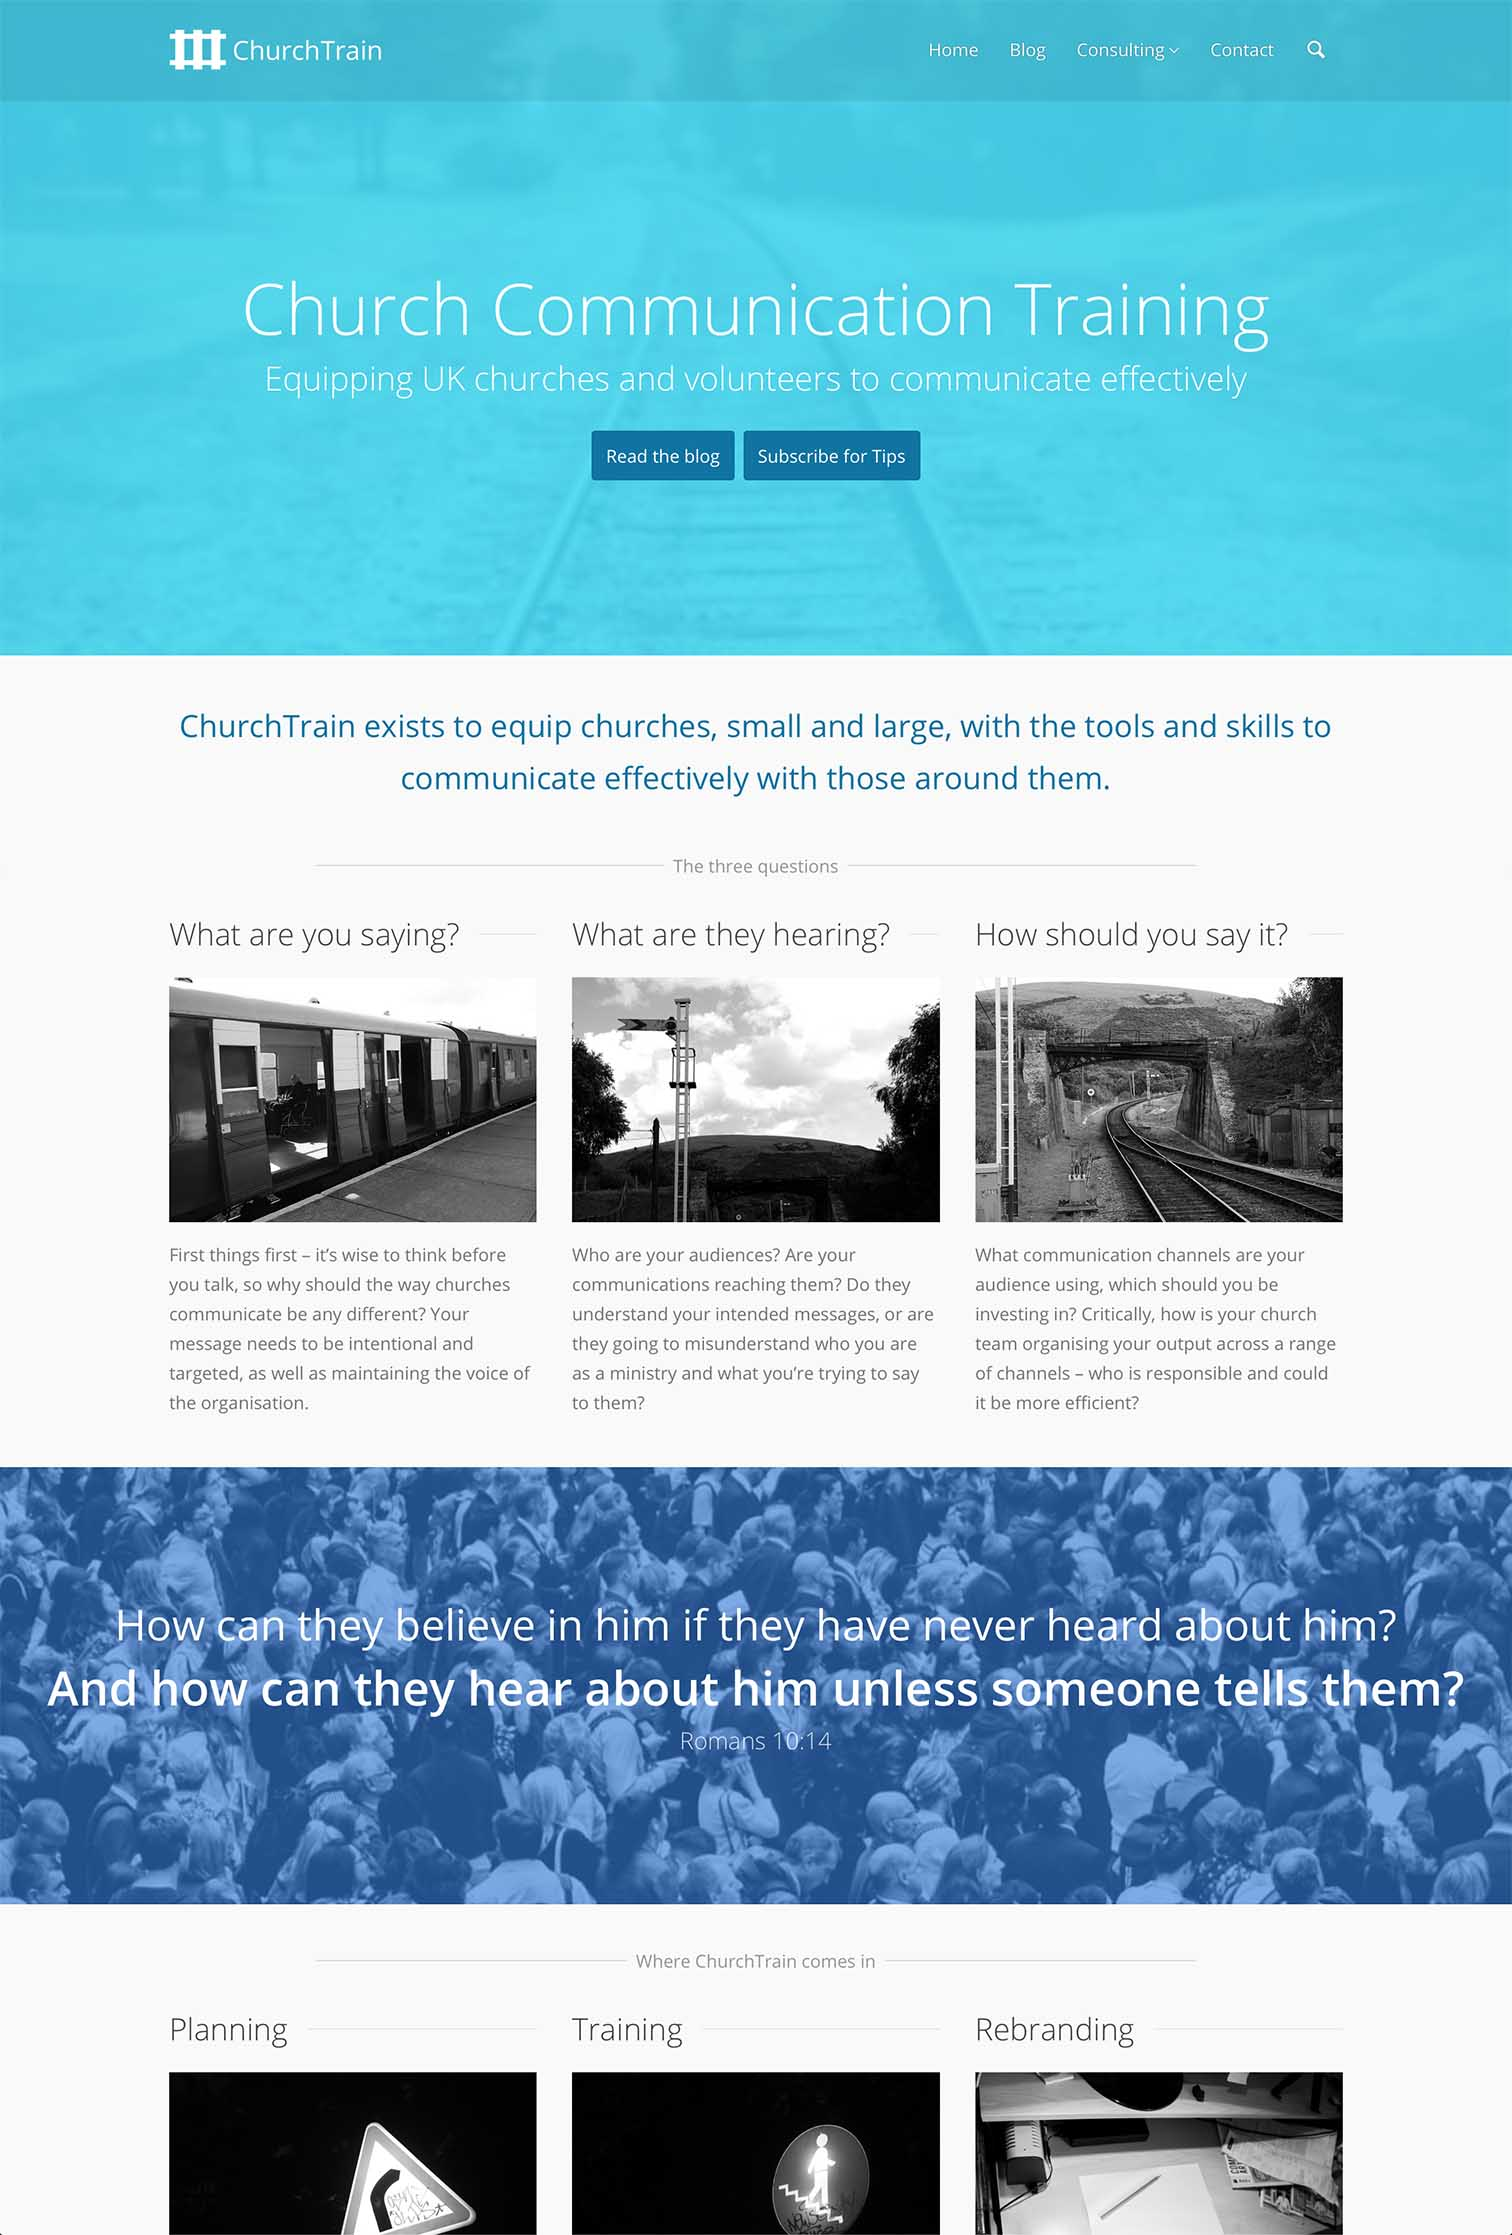 ChurchTrain Website Design and Communication Advice for Churches